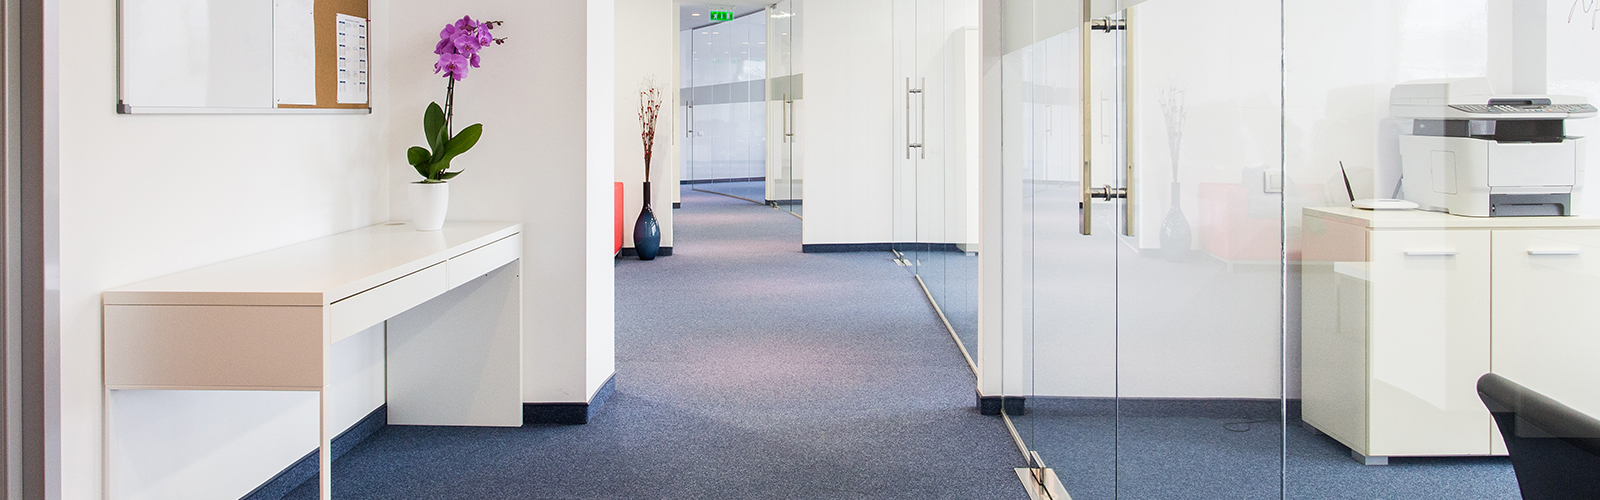 Five Key Benefits Of Hiring A Professional Carpet Cleaning